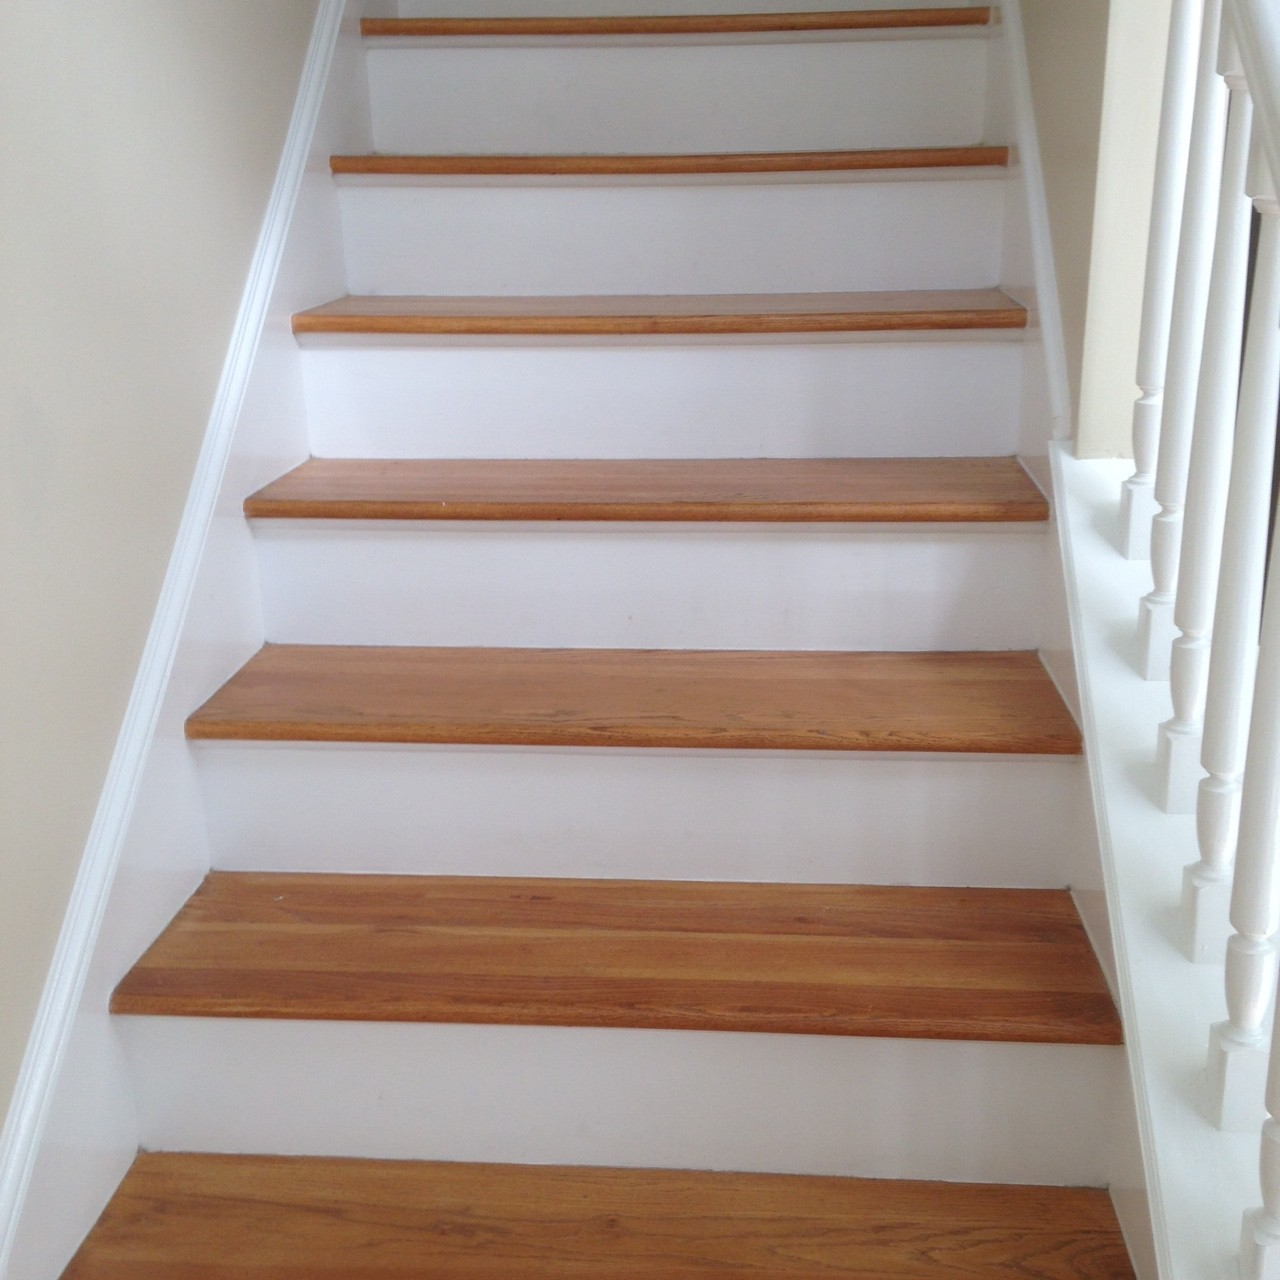 Amazing Wood Stairs Prior To Sanding And Staining To Refinish